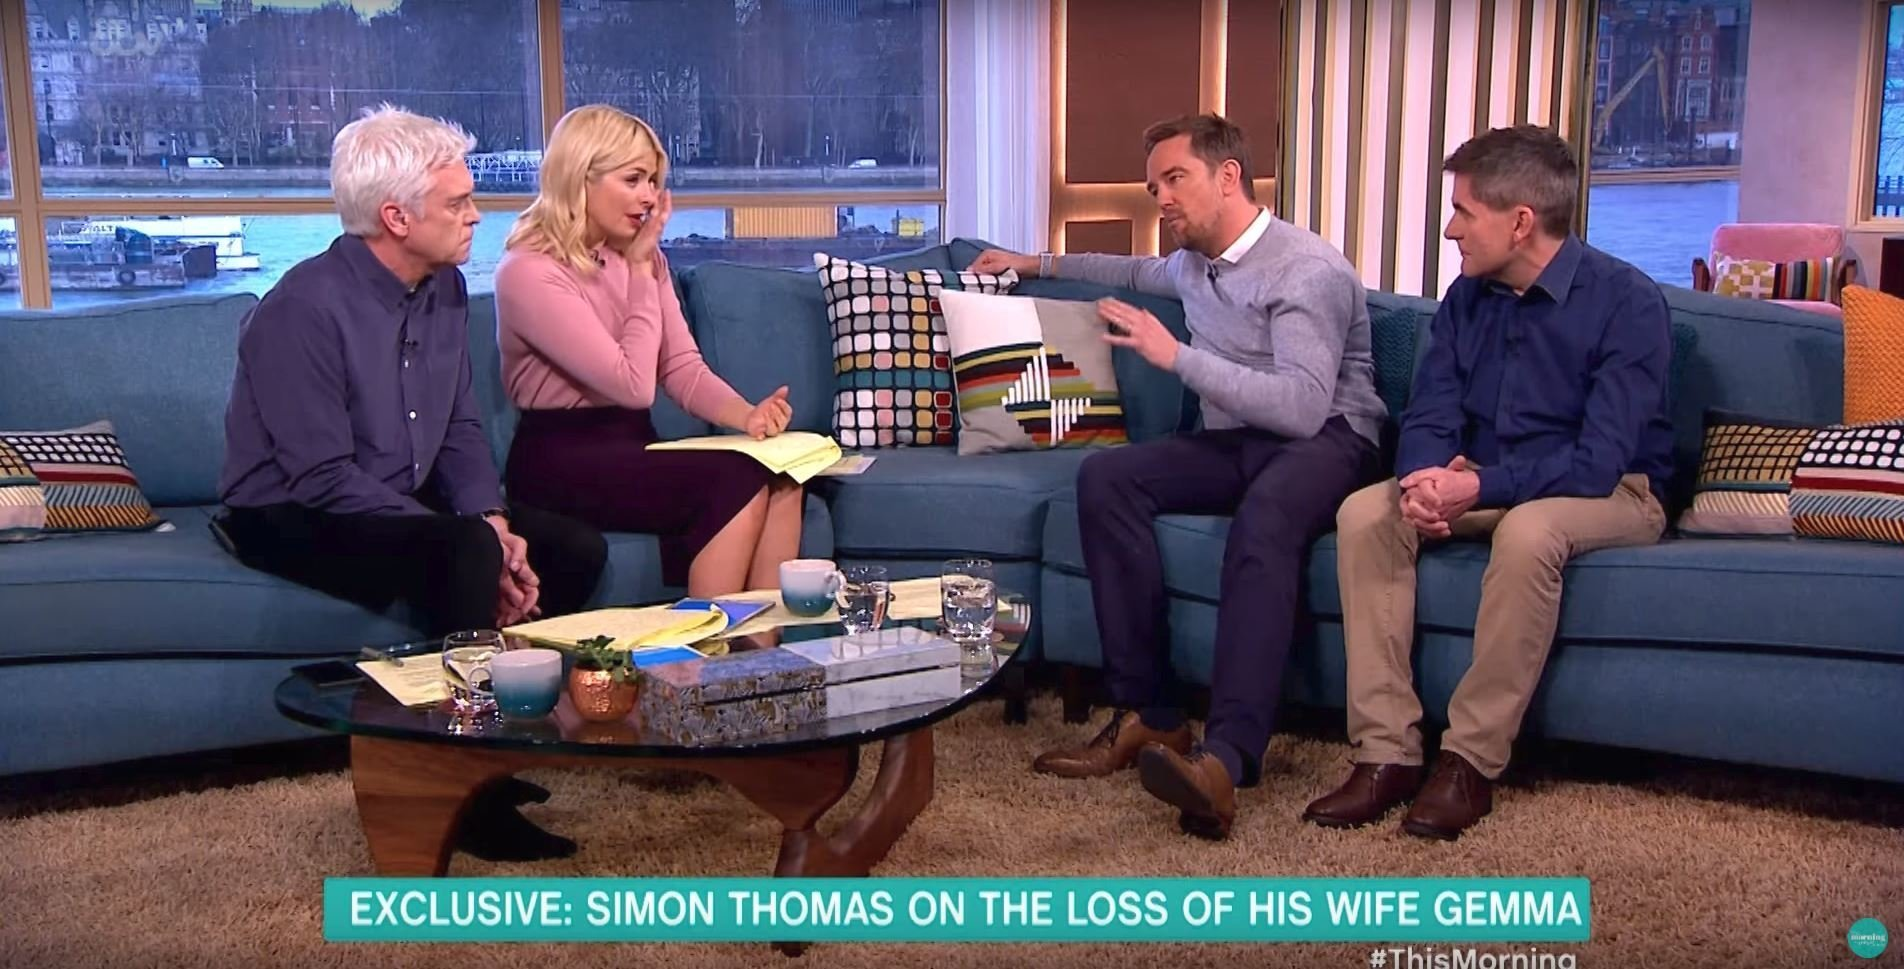 Simon Thomas Has Holly Willoughby And Phillip Schofield In Tears With Tragic Story Of Wife's Death On 'This Morning'